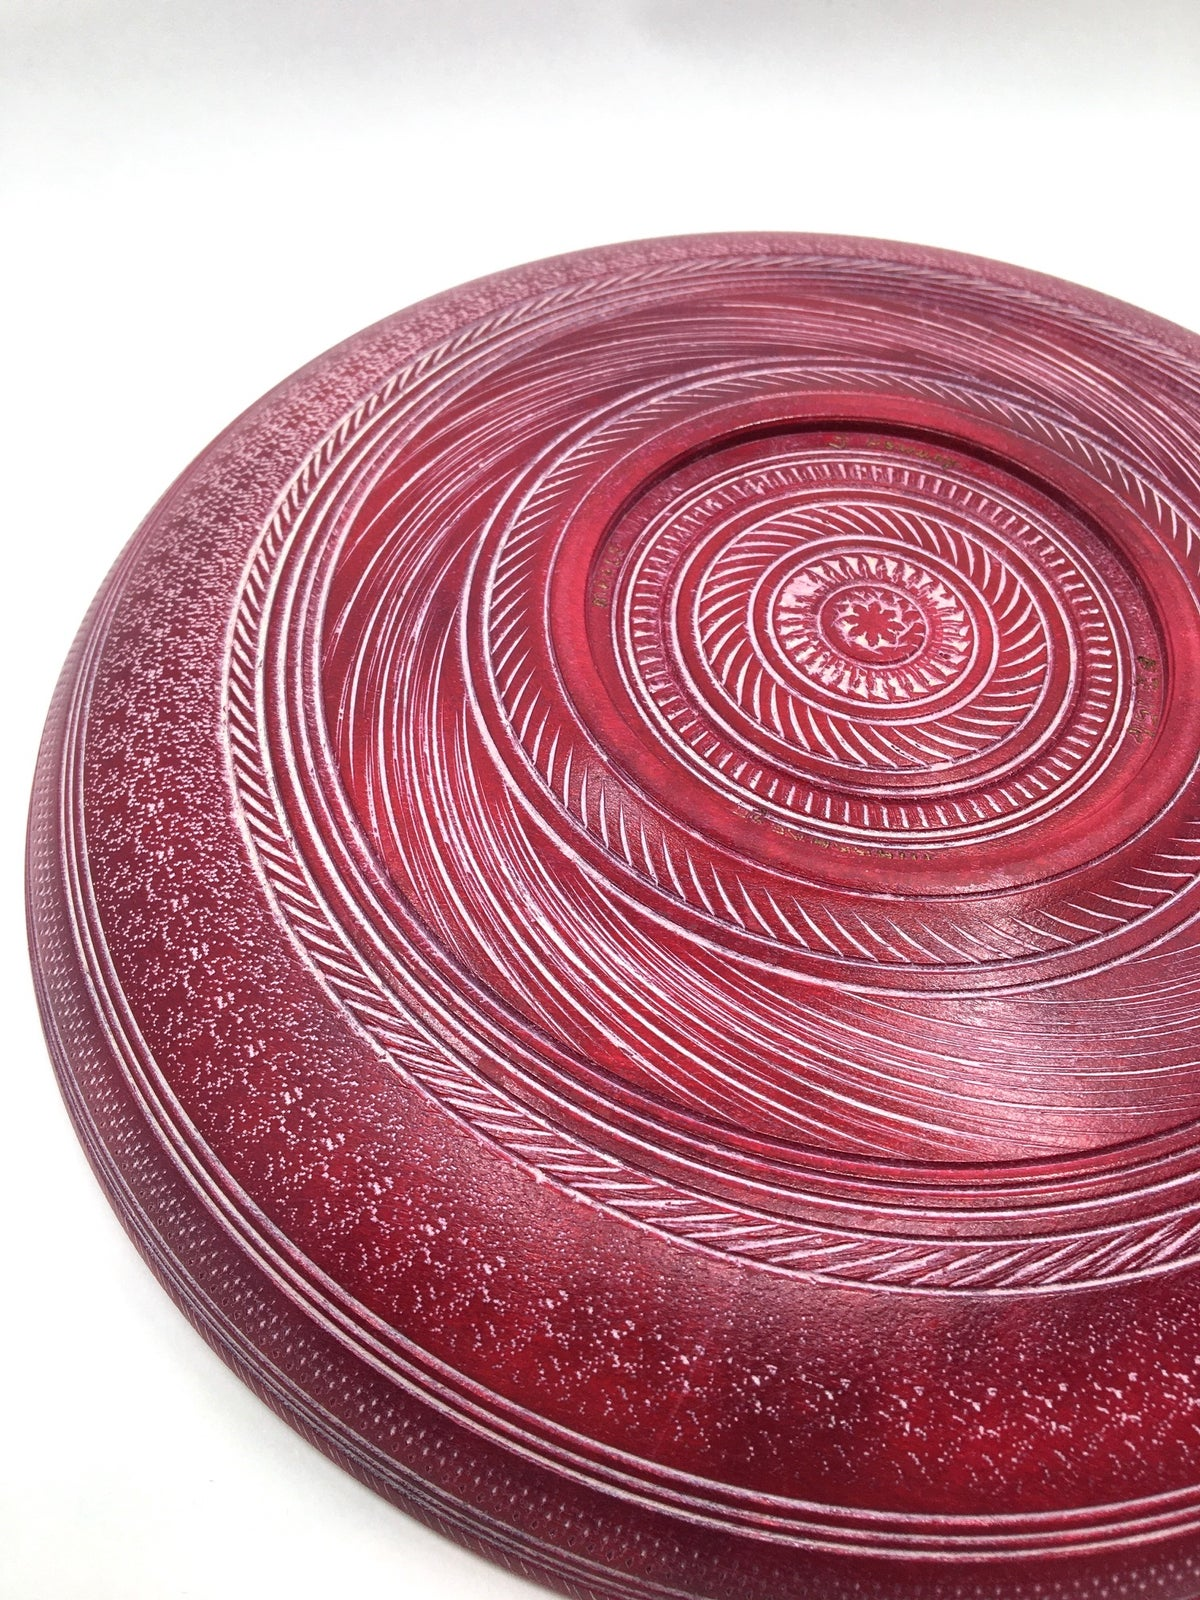 Wooden Burgundy Bowl by Jeff Hornung